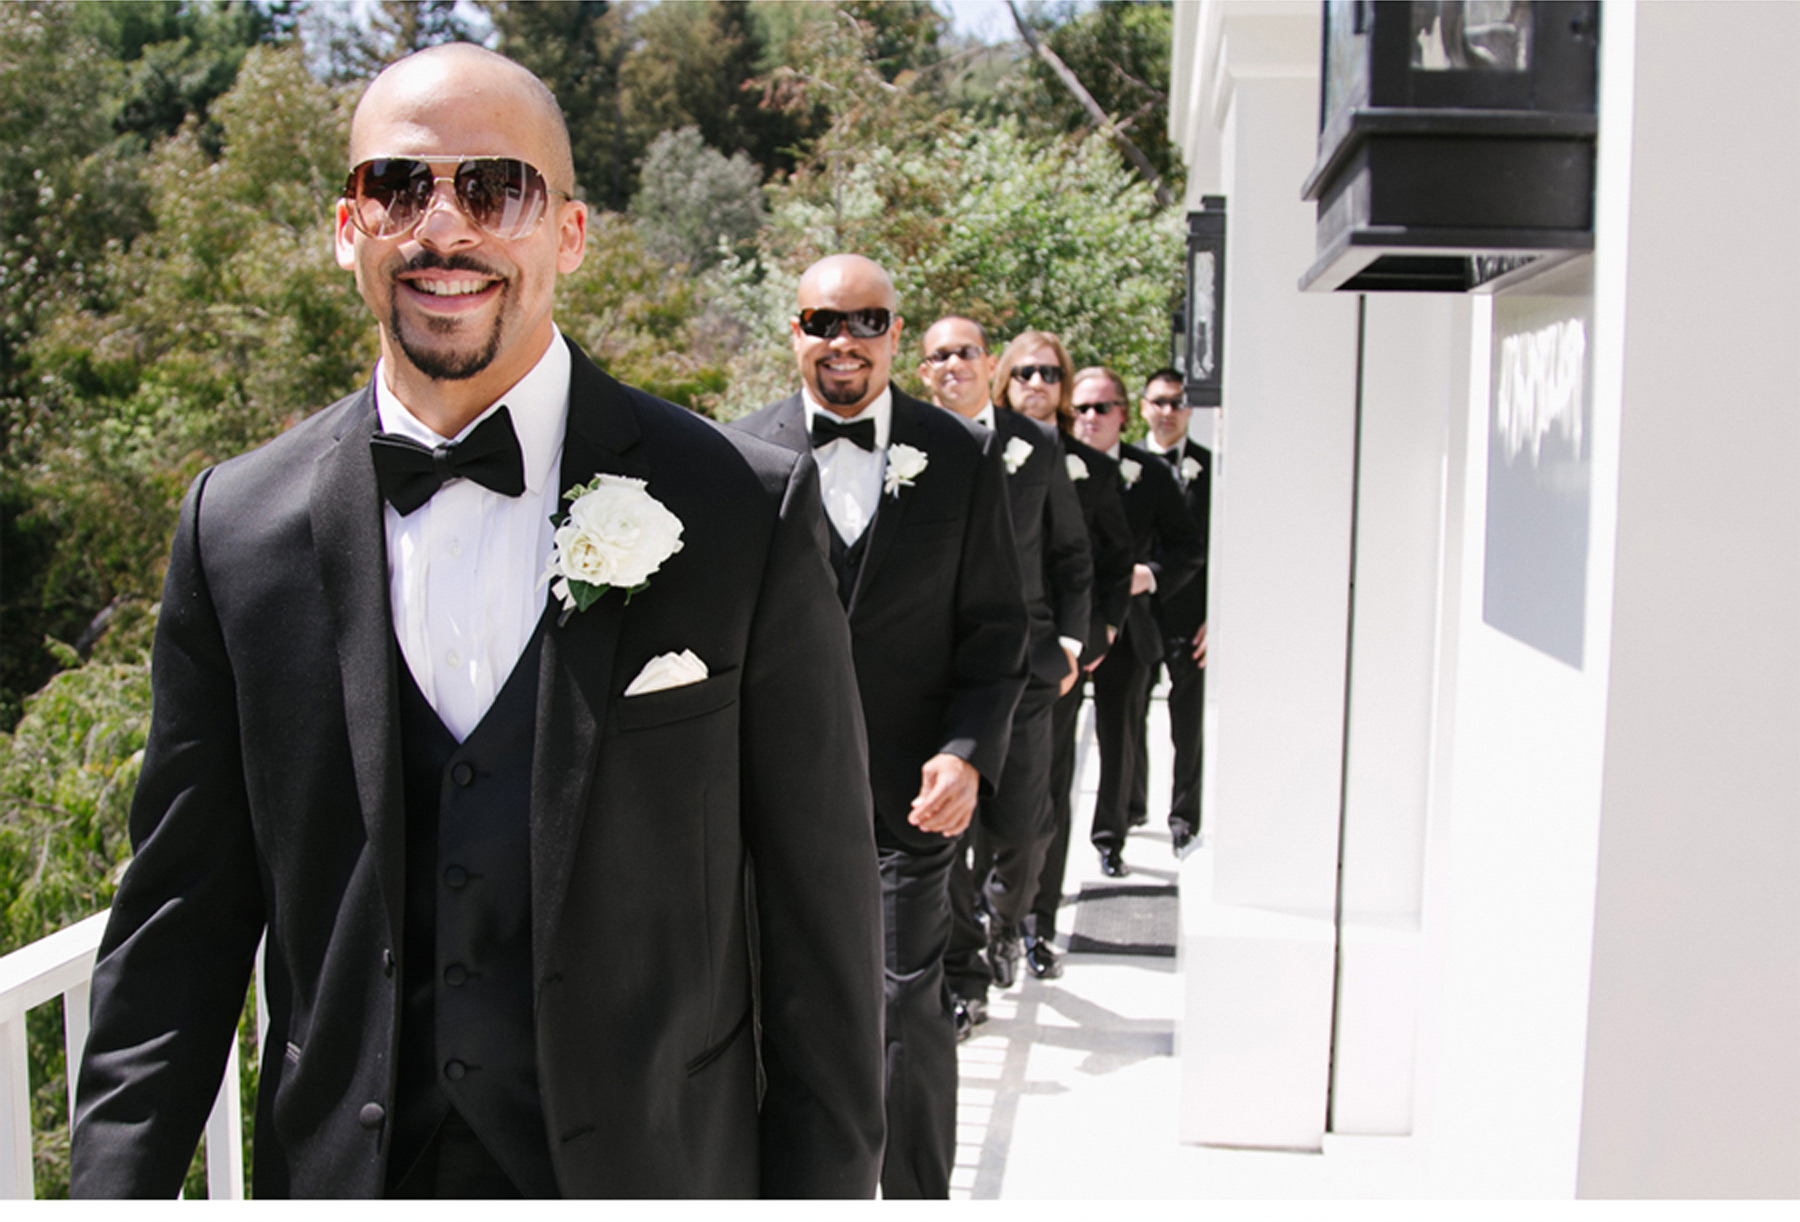 The Men Dress Up in Black Tuxedos, Bow Ties and White Floral Boutonnieres